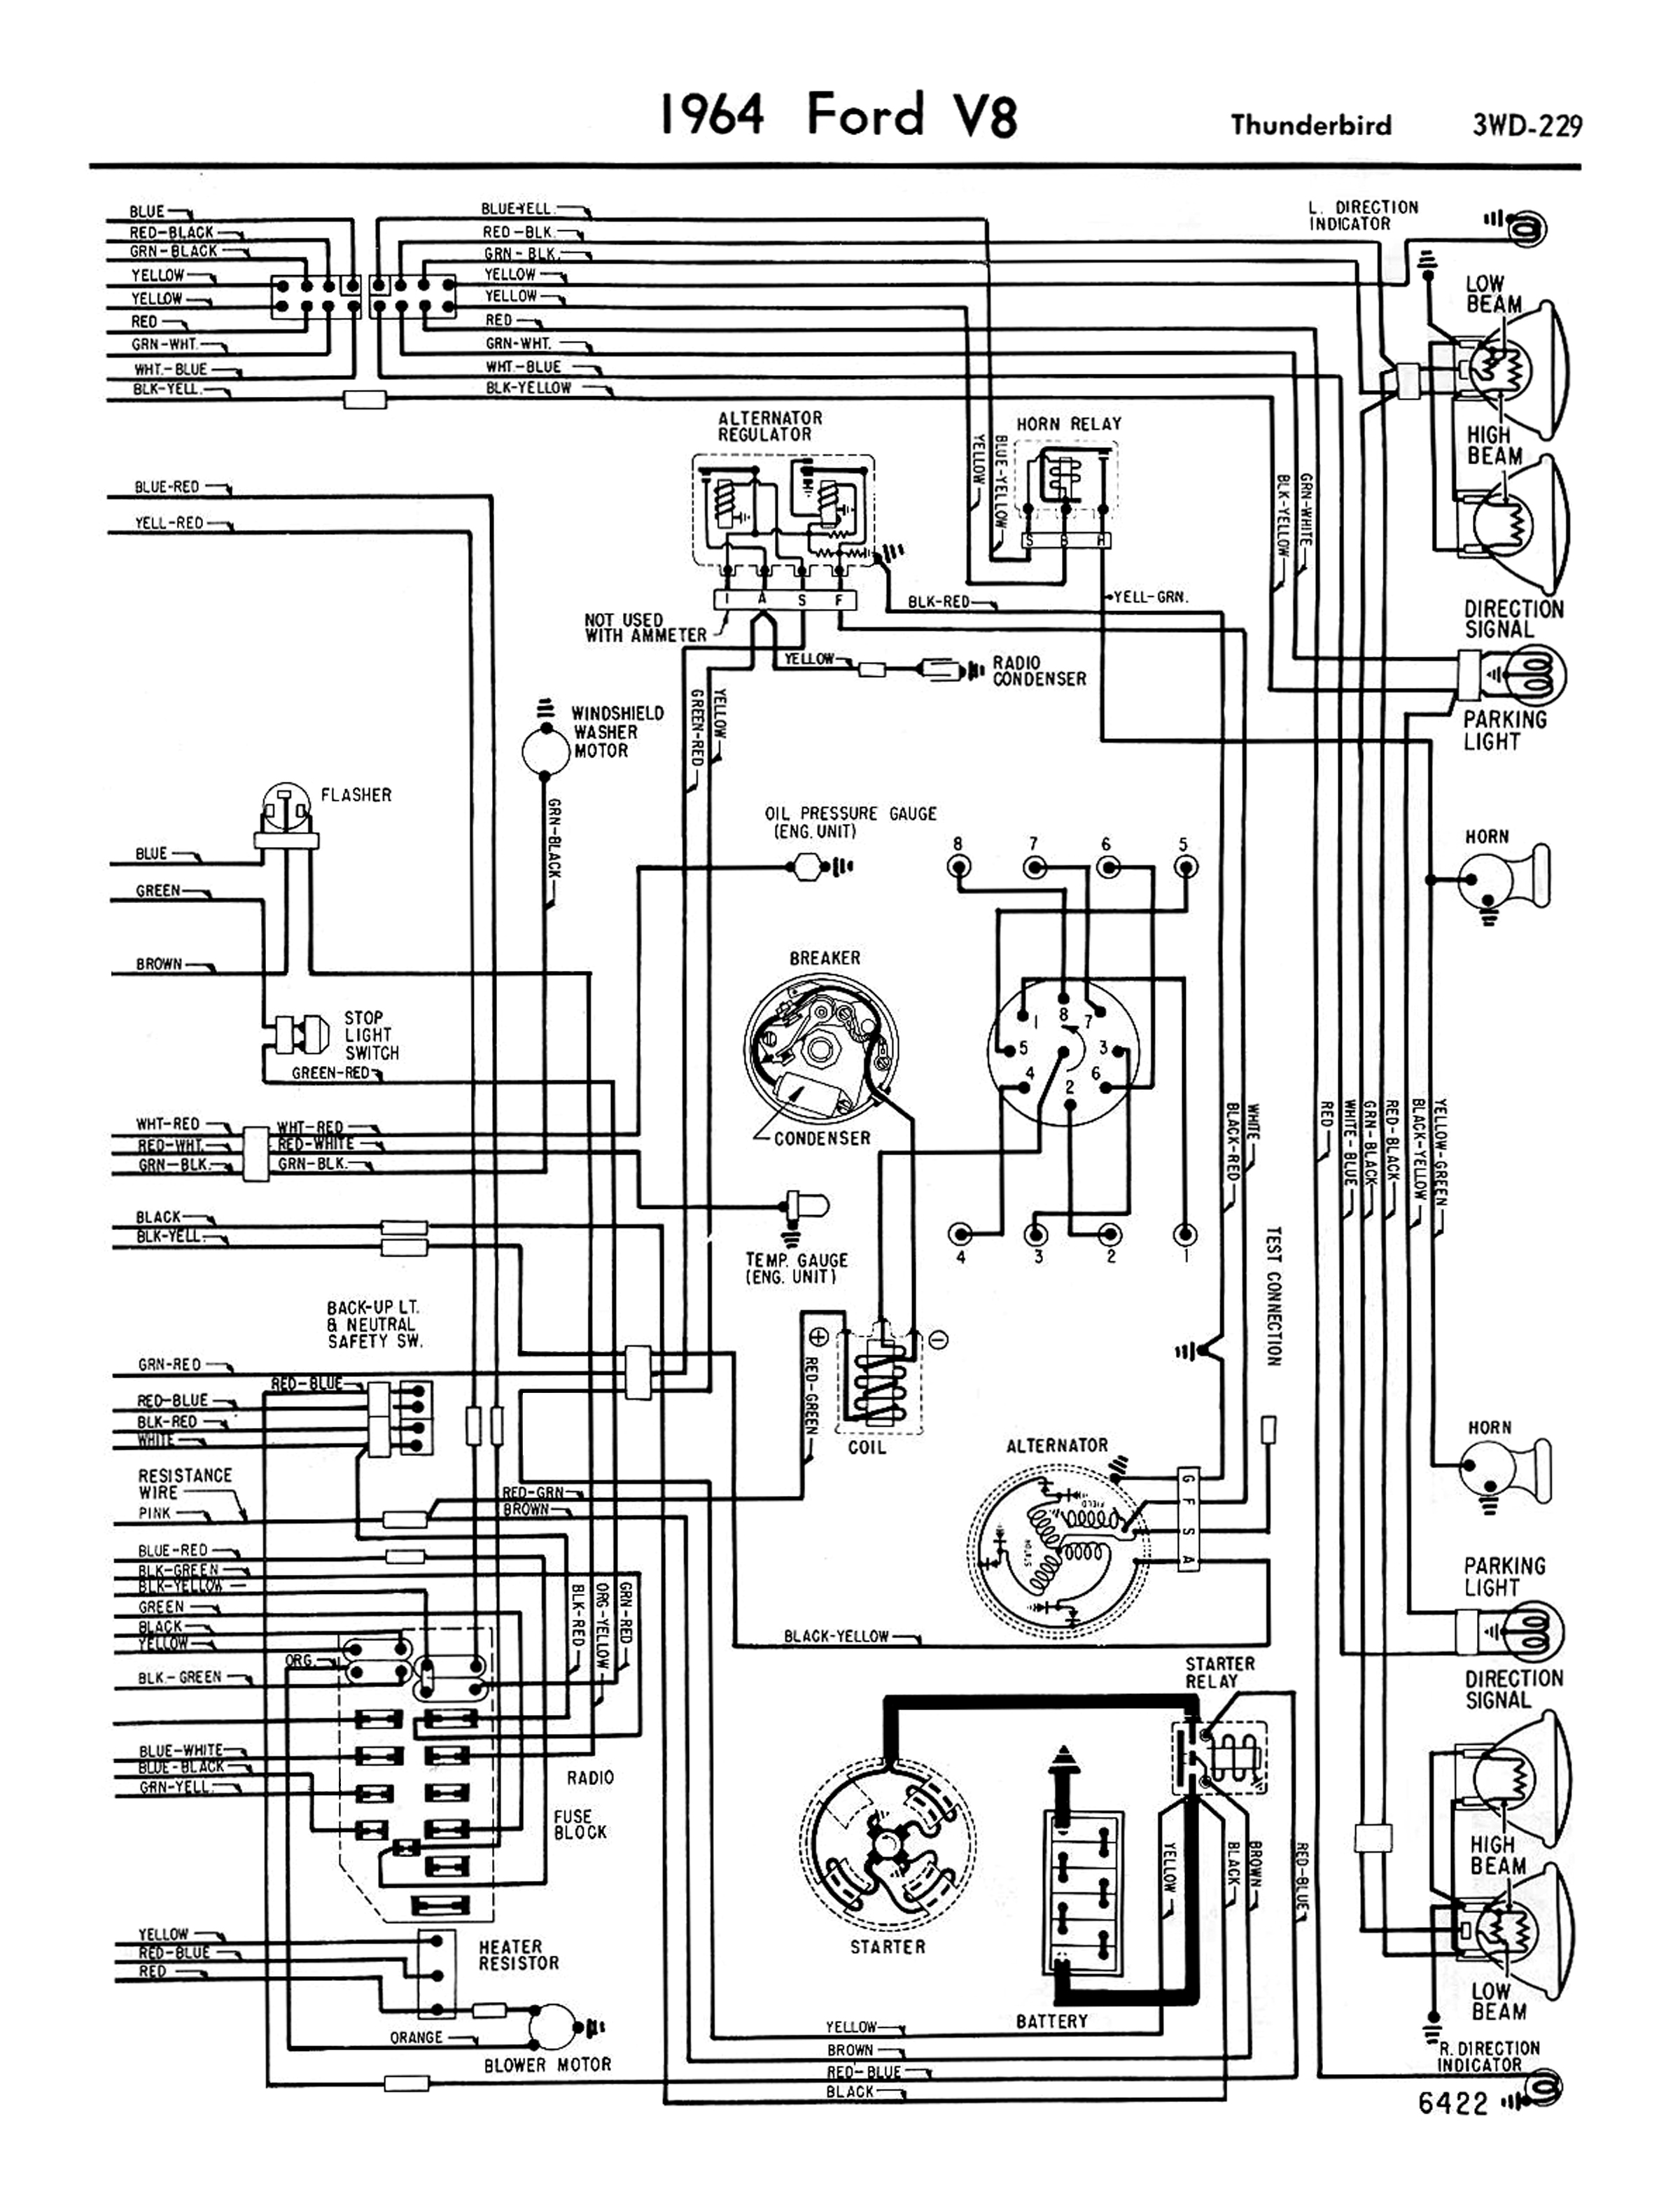 1958 68 ford electrical schematics turn signal switch wiring diagram